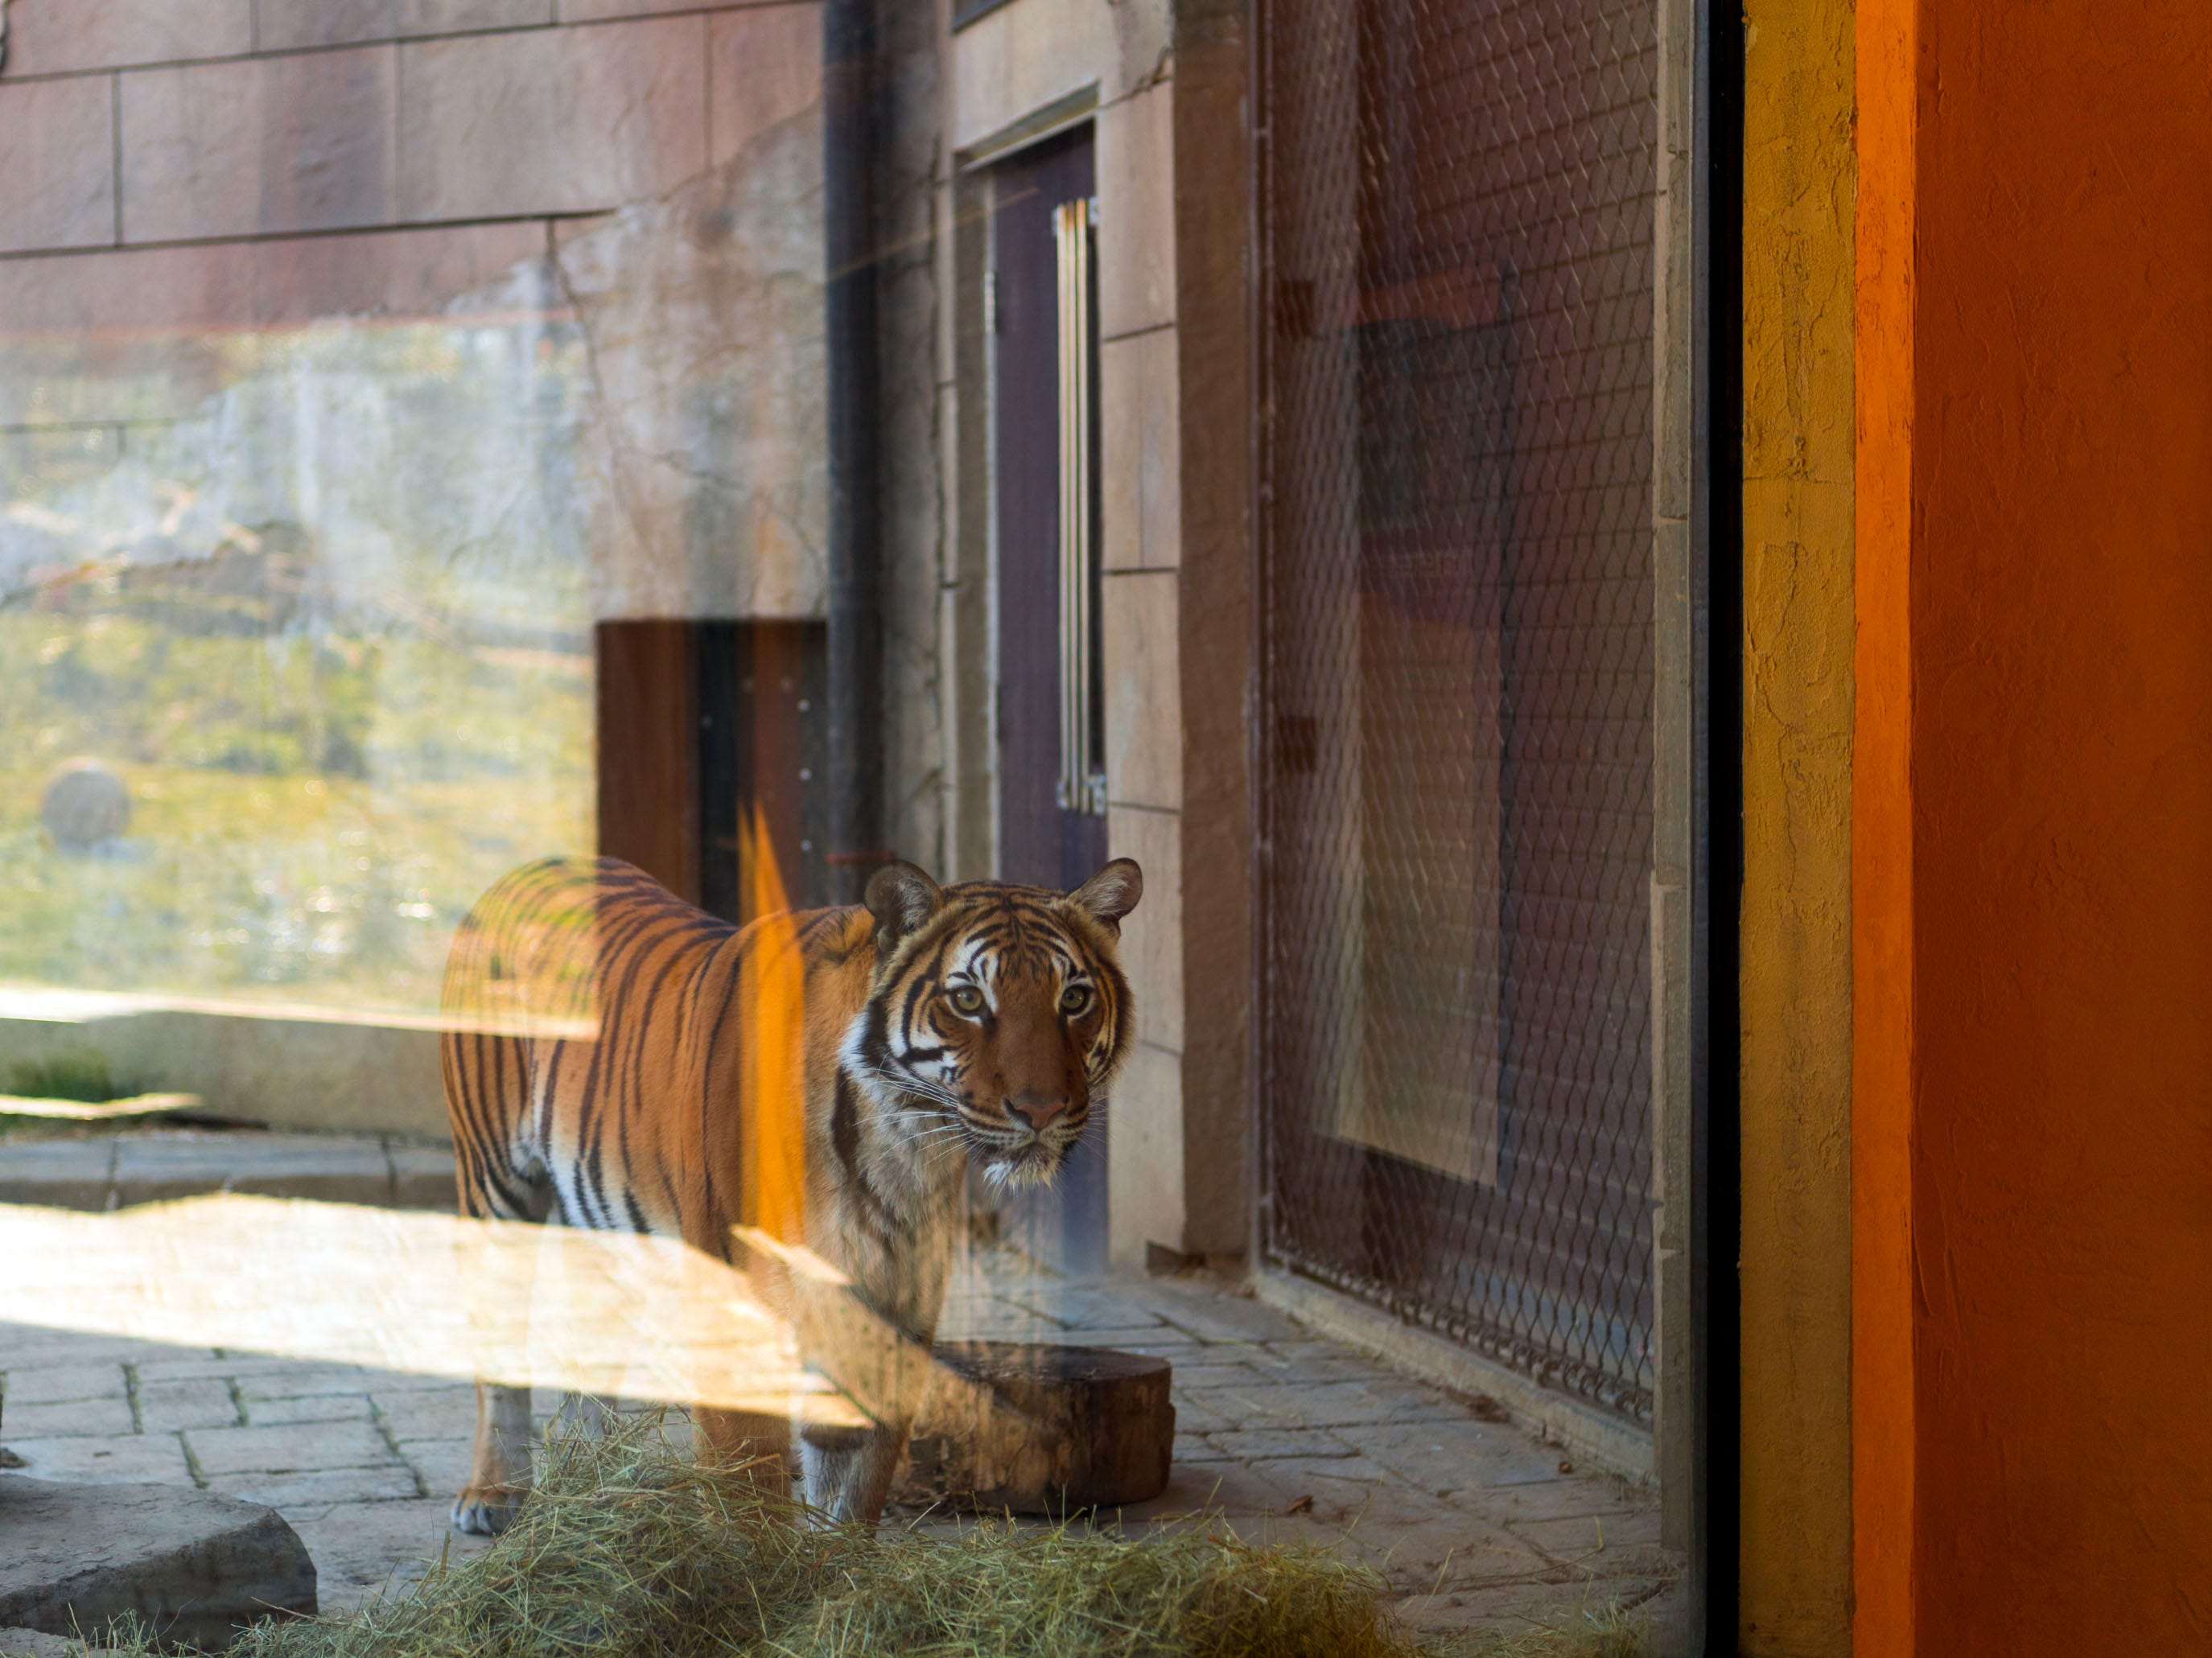 Arya, a rare Malayan tiger, looks into the enclosed viewing room at Zoo Knoxville's Tiger Forest habitat on Monday, January 28, 2019.